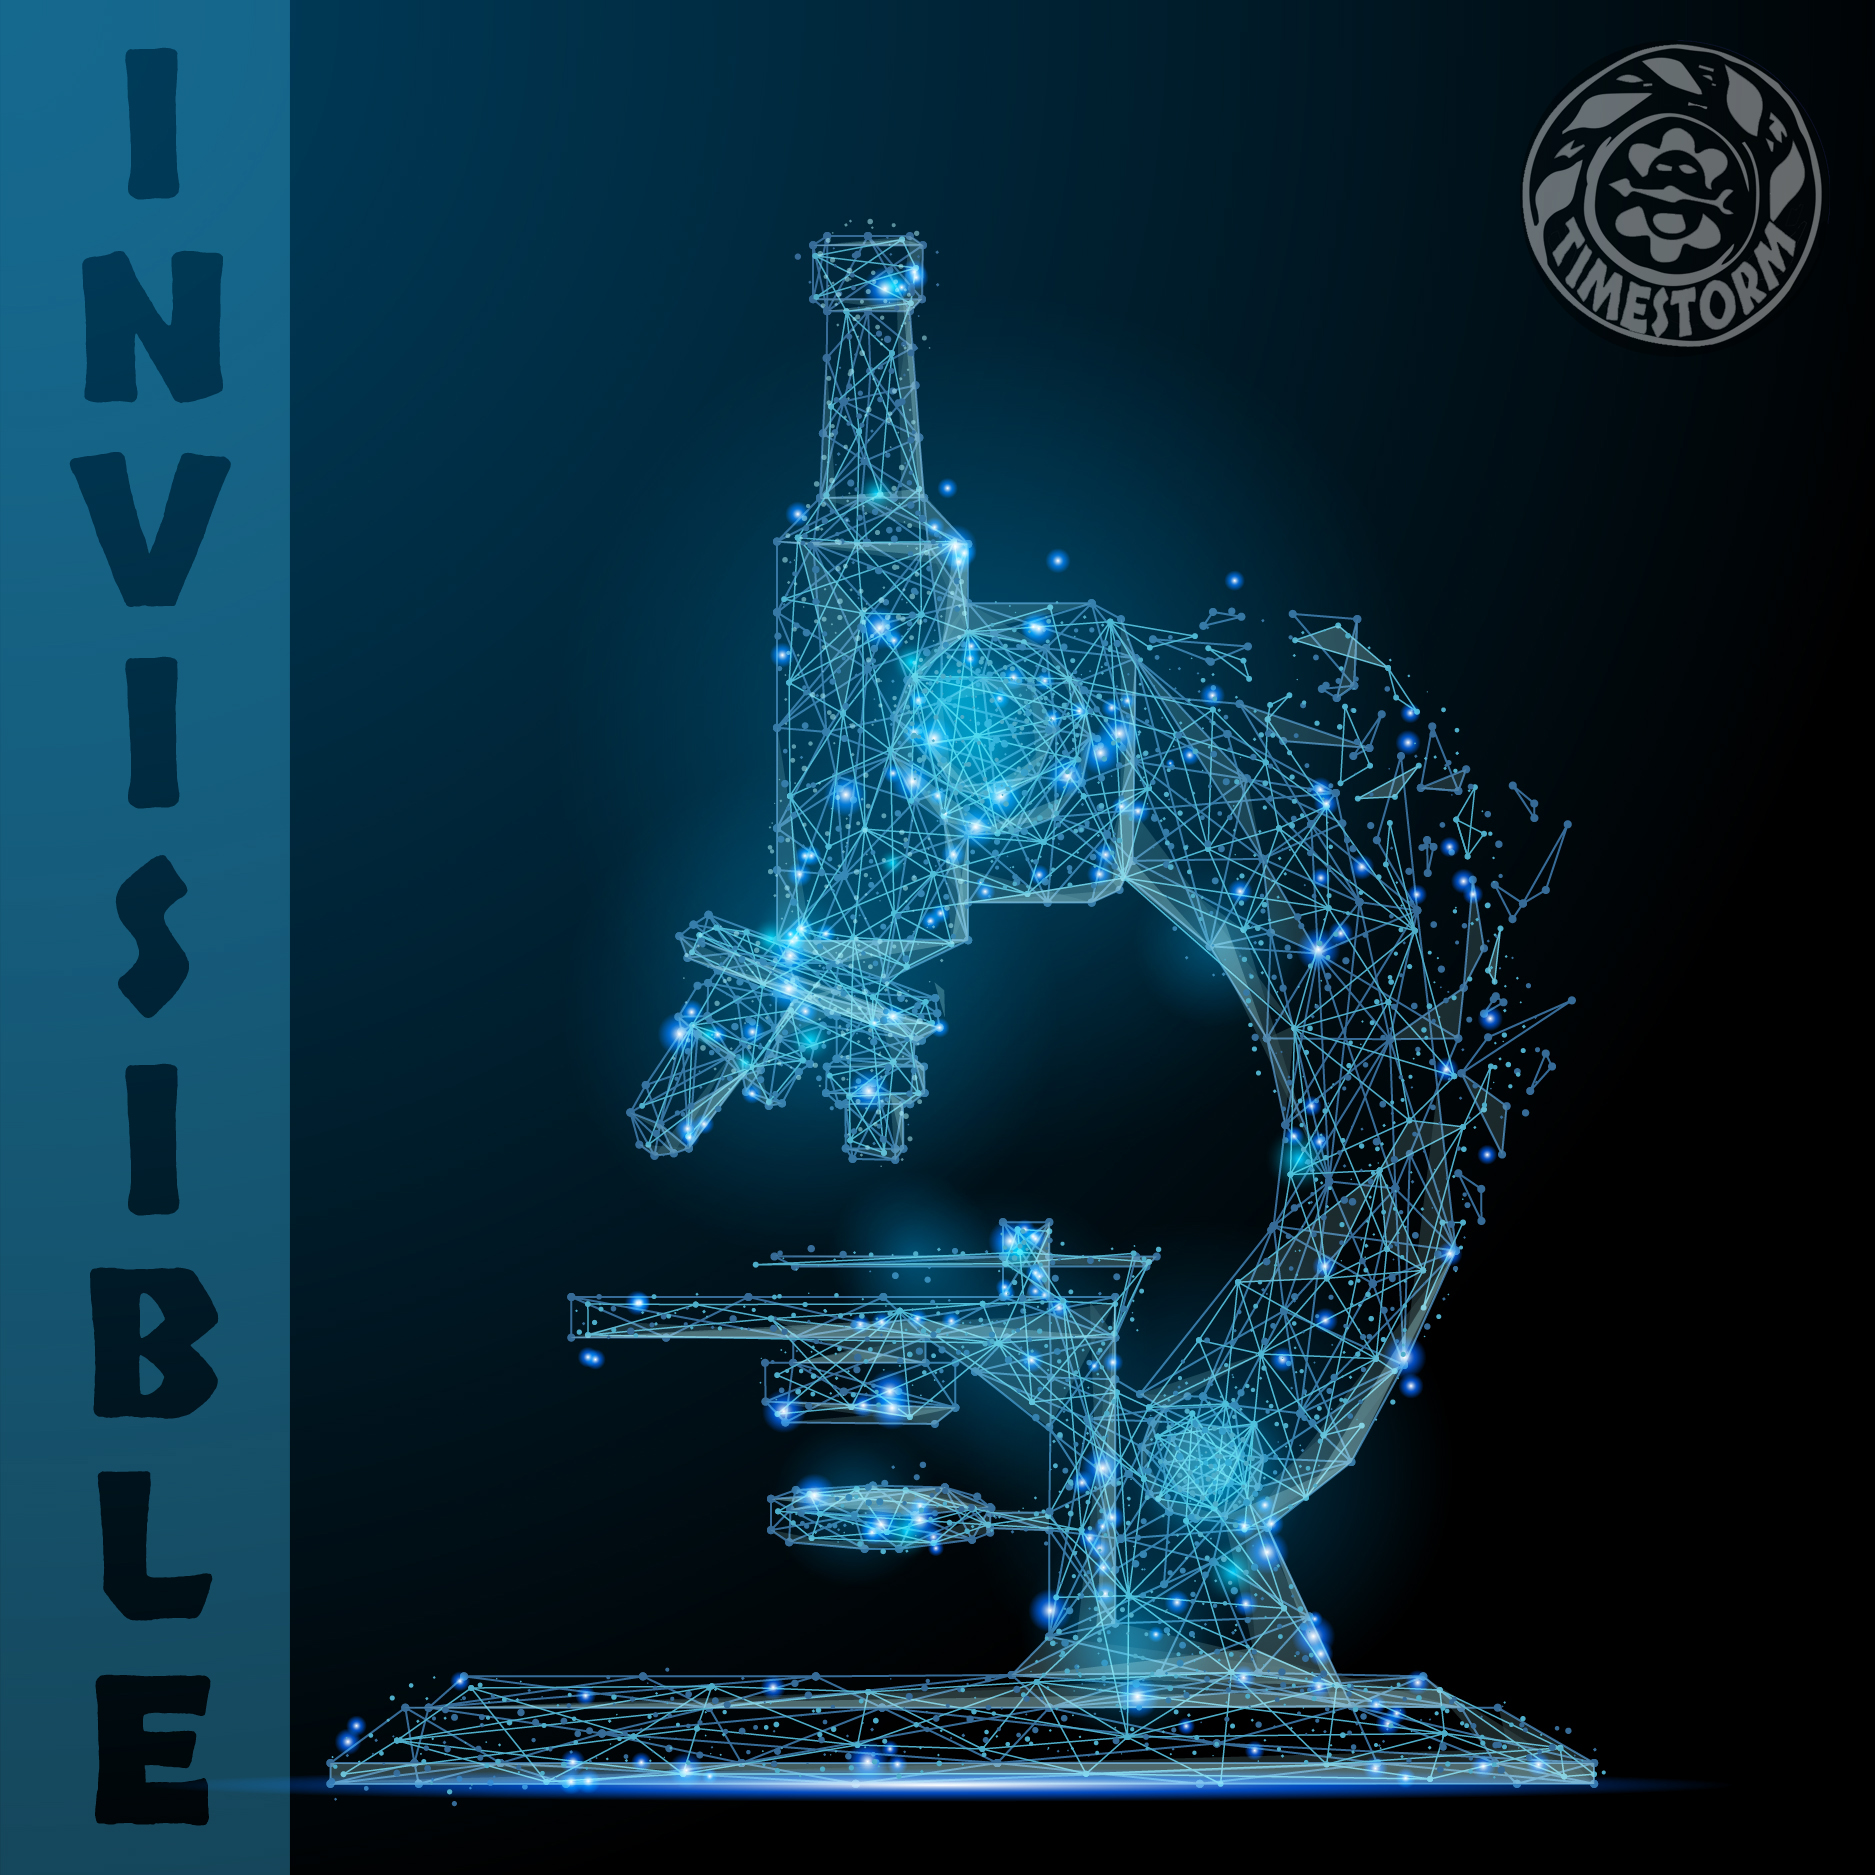 Episode 9: Invisible